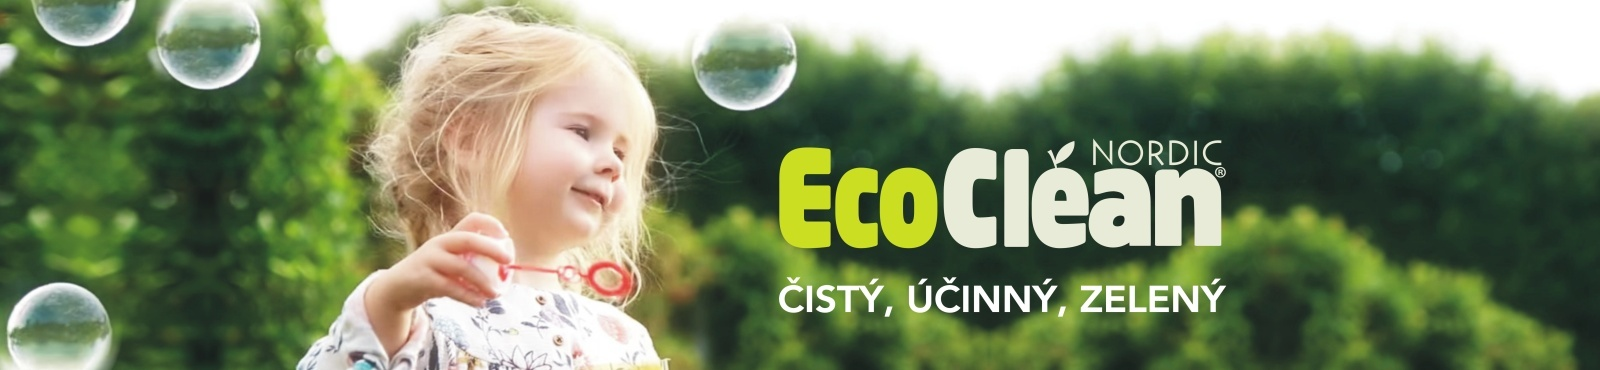 banner_ecoclean_new